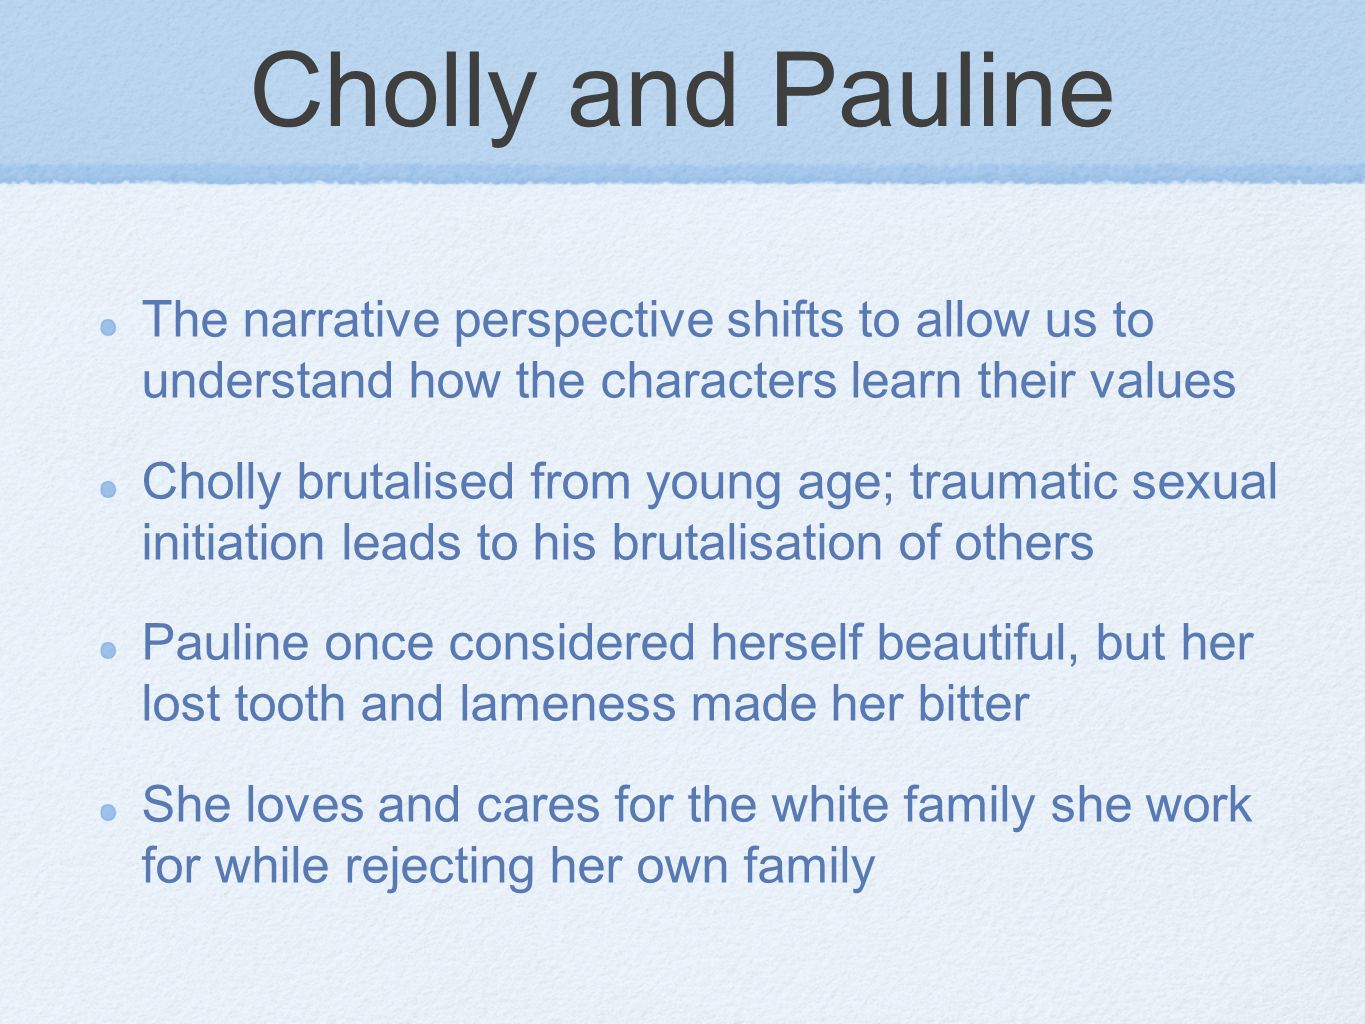 Cholly and Pauline The narrative perspective shifts to allow us to understand how the characters learn their values.